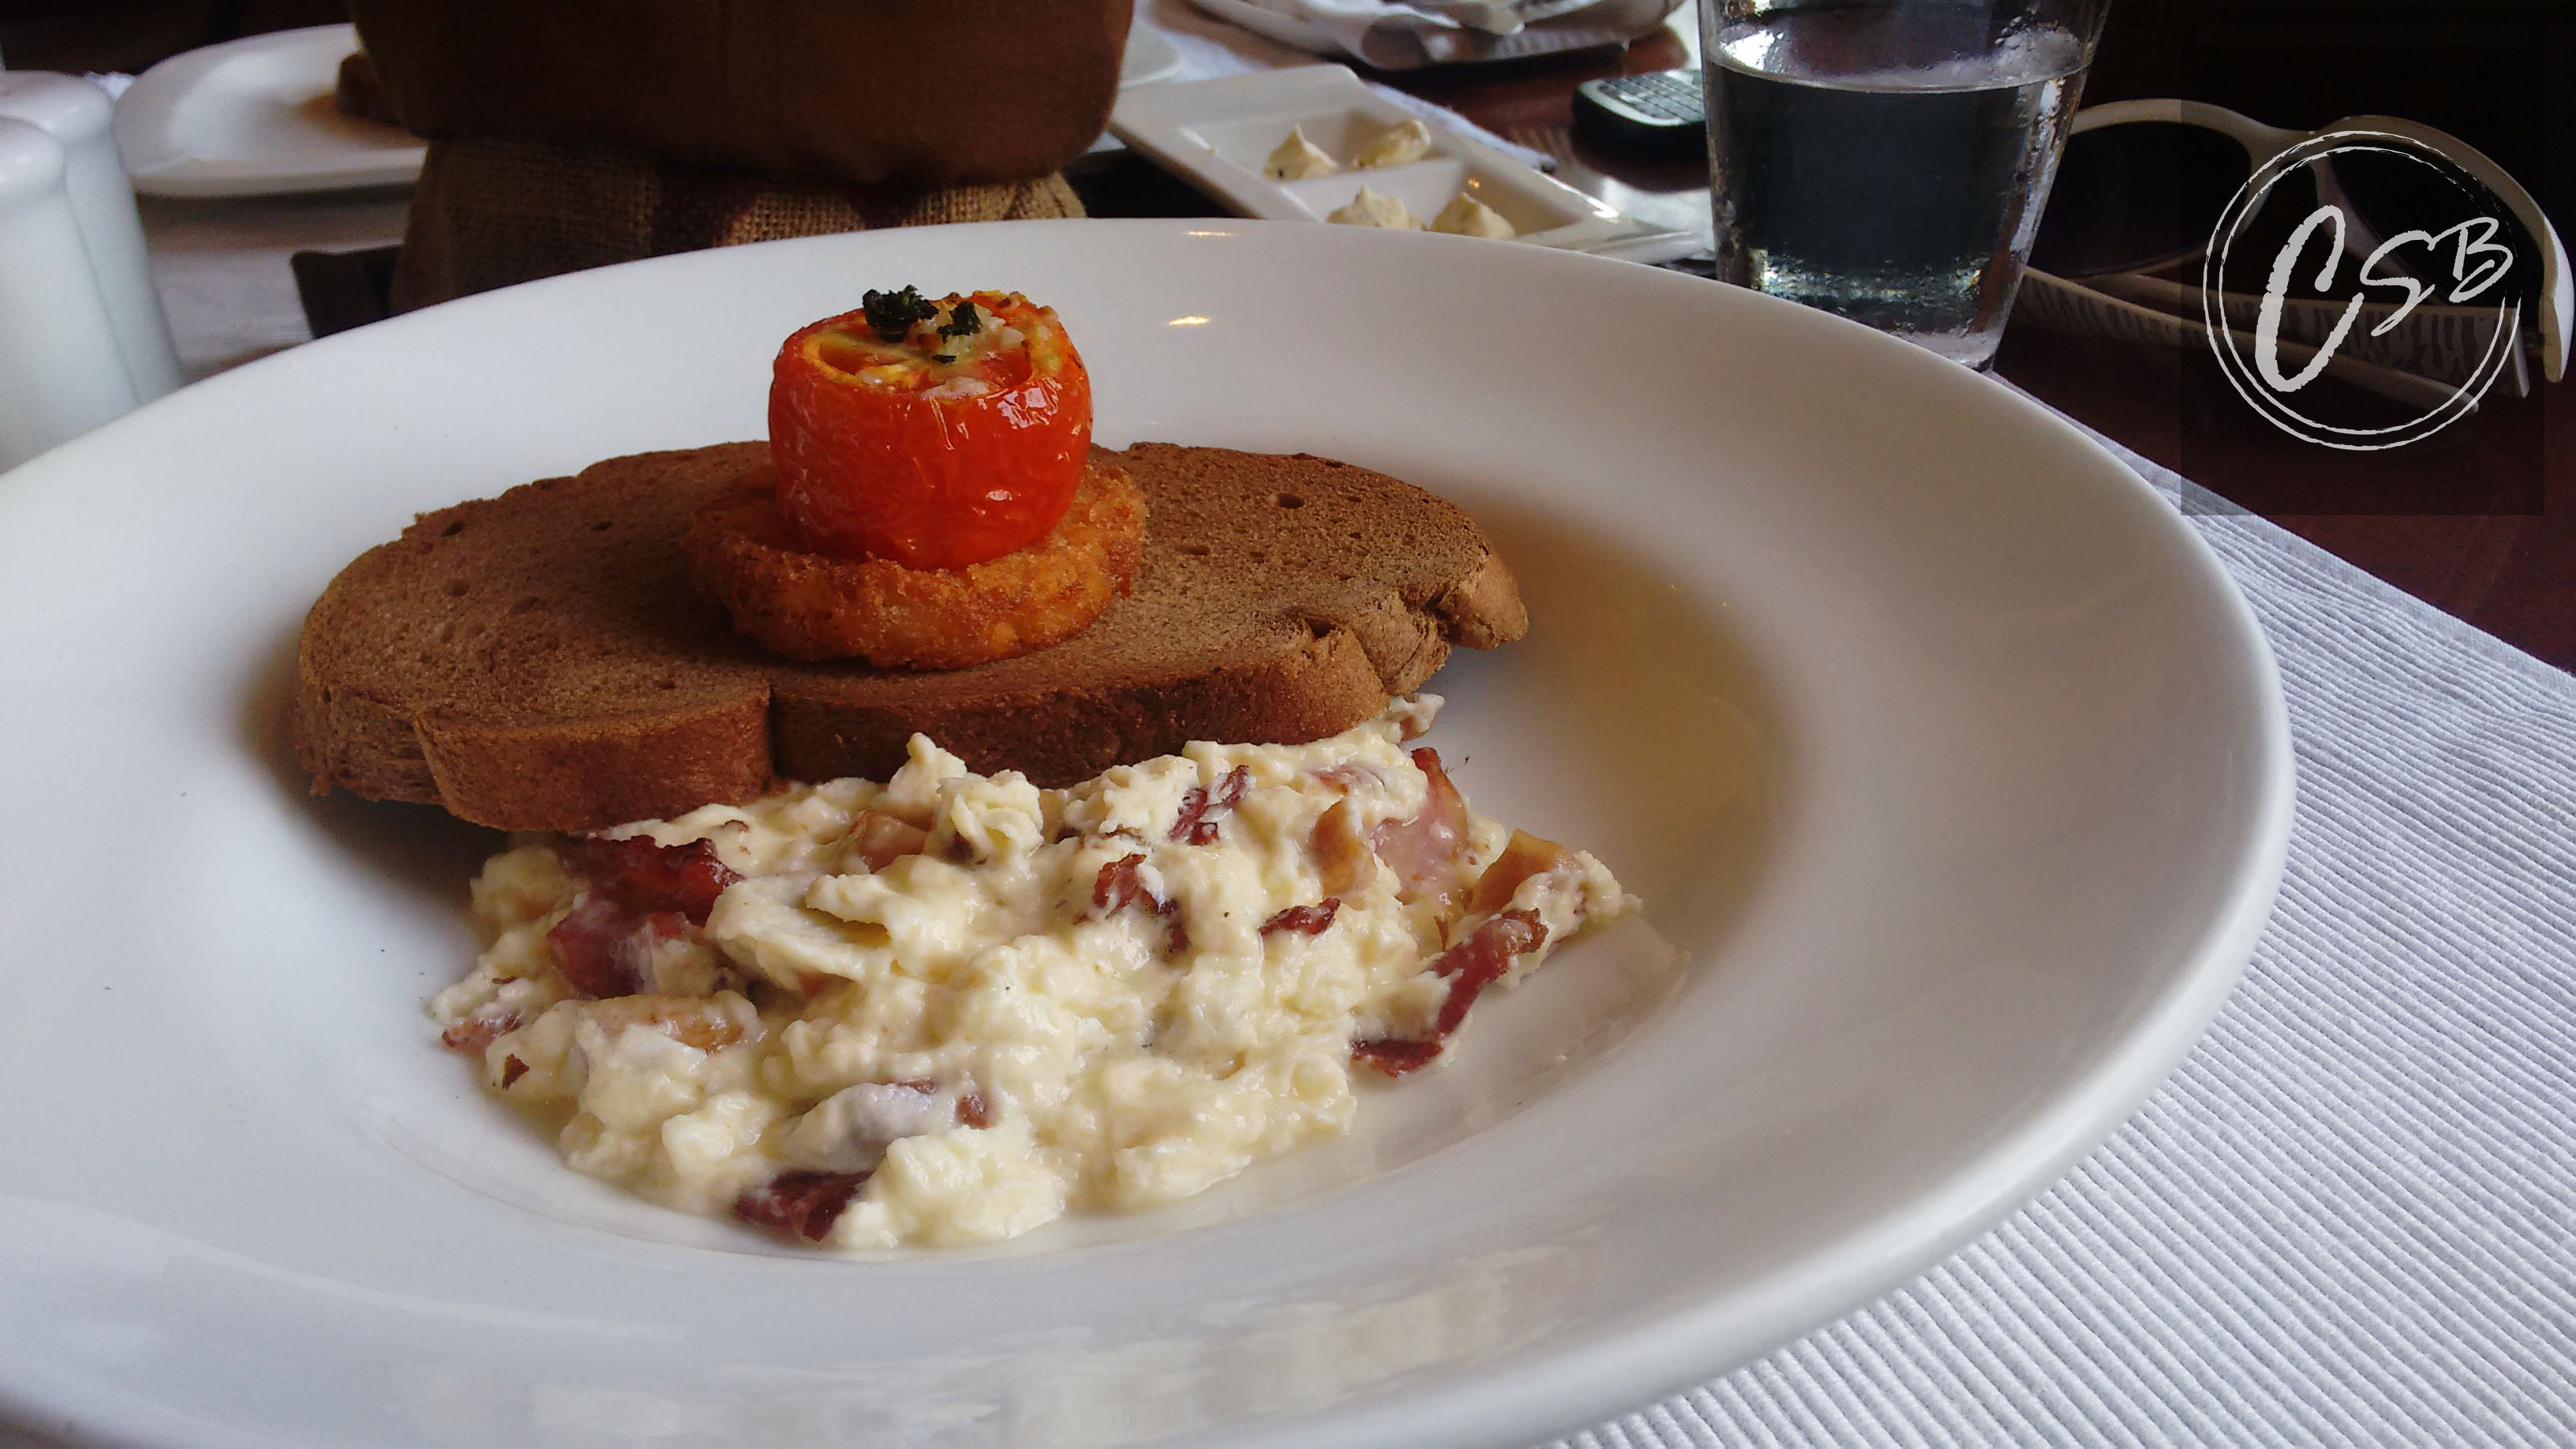 Terracotta scrambled eggs with sausage and bacon